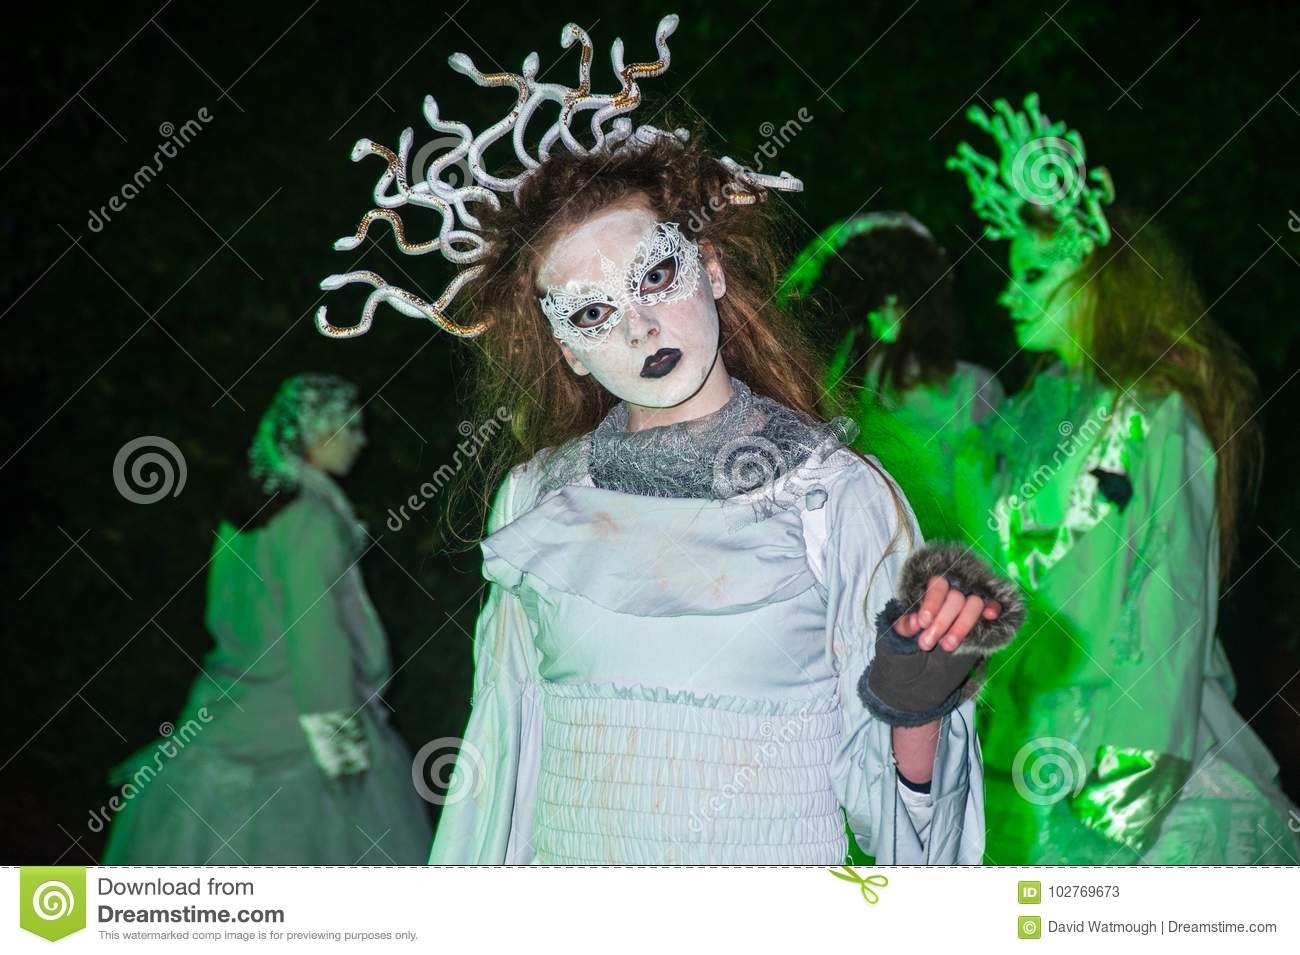 Characters in the underworld at Halloween